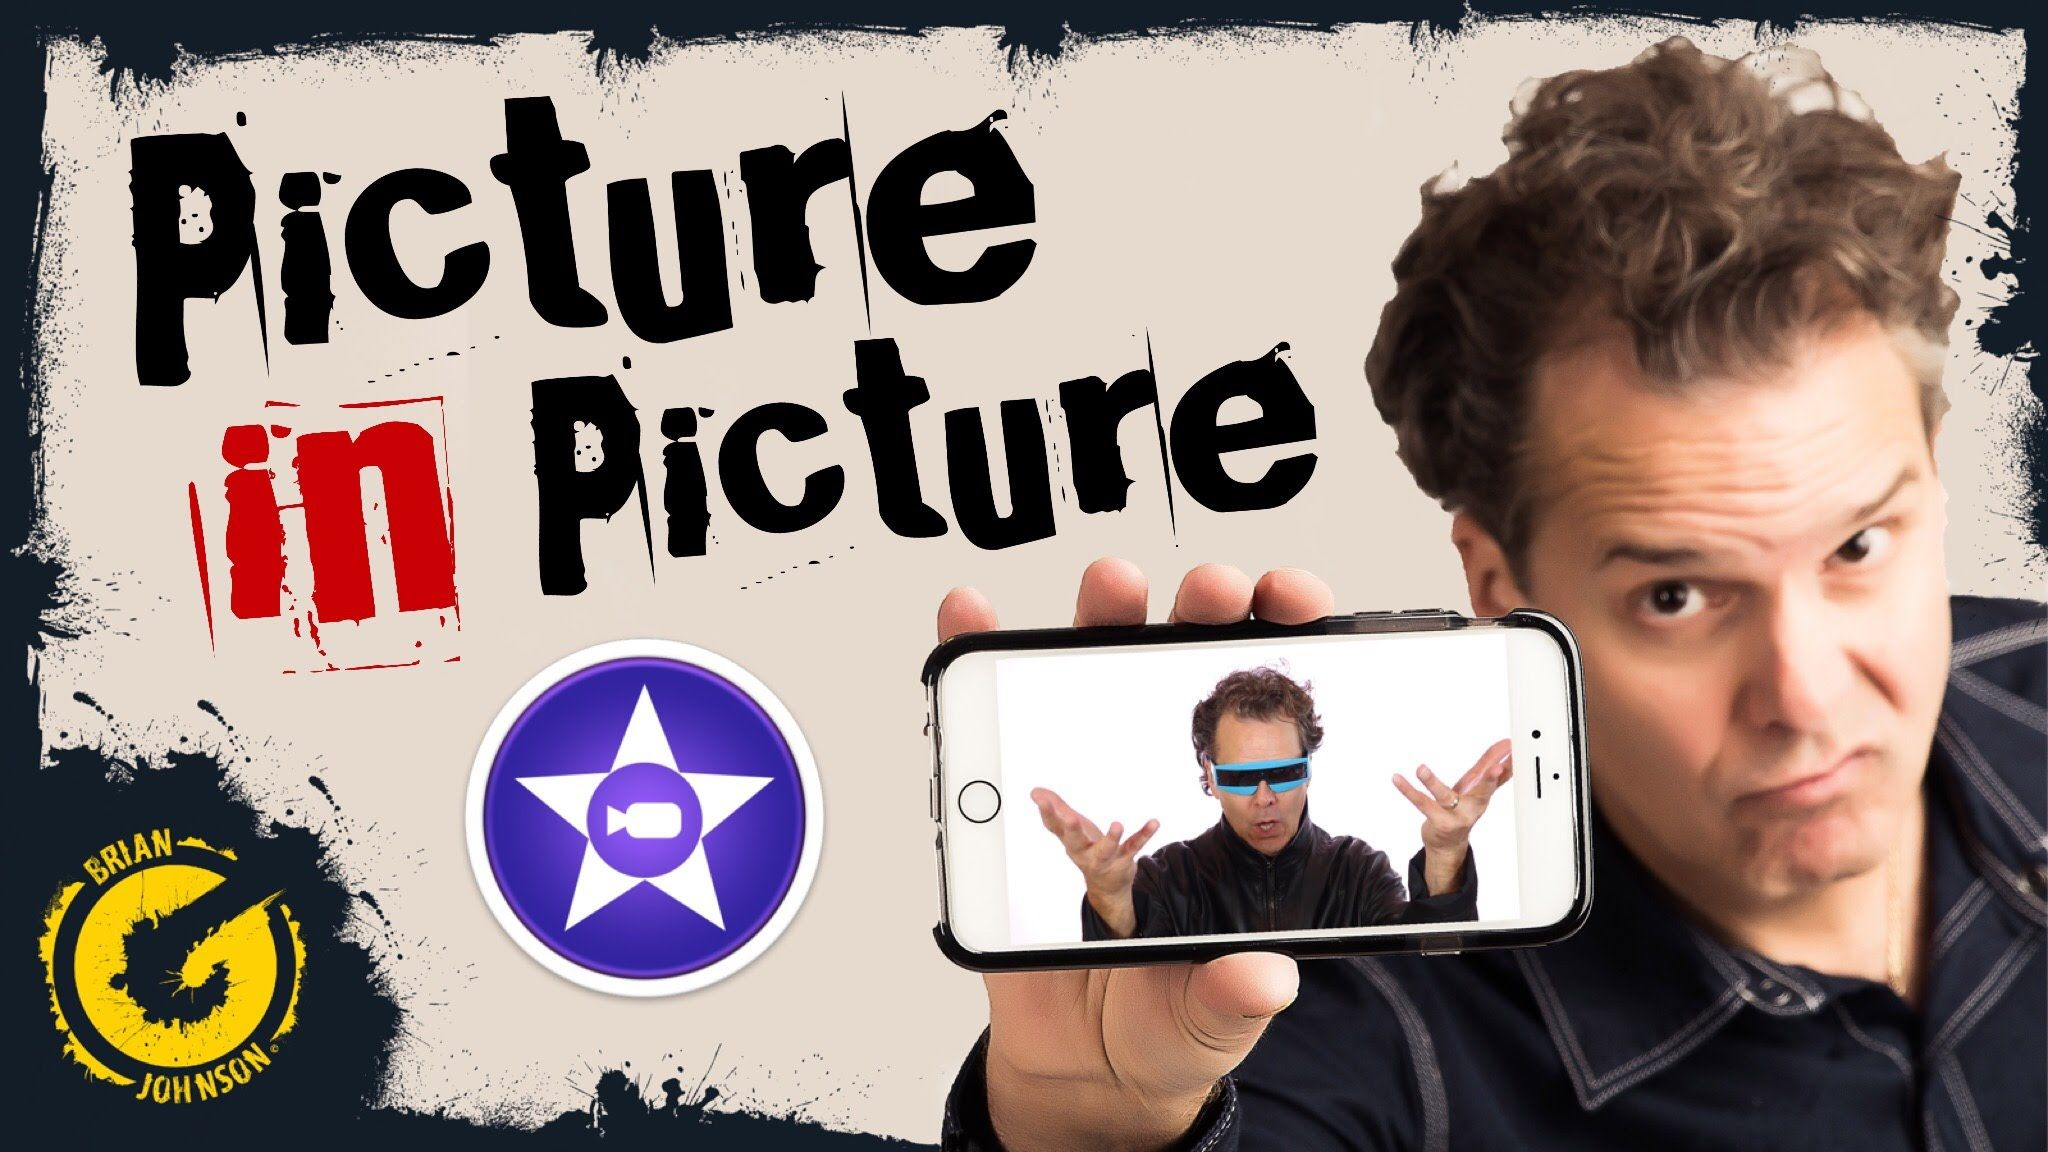 iphone imovie tricks, iphone imovie trick, iphone imovie effects ...